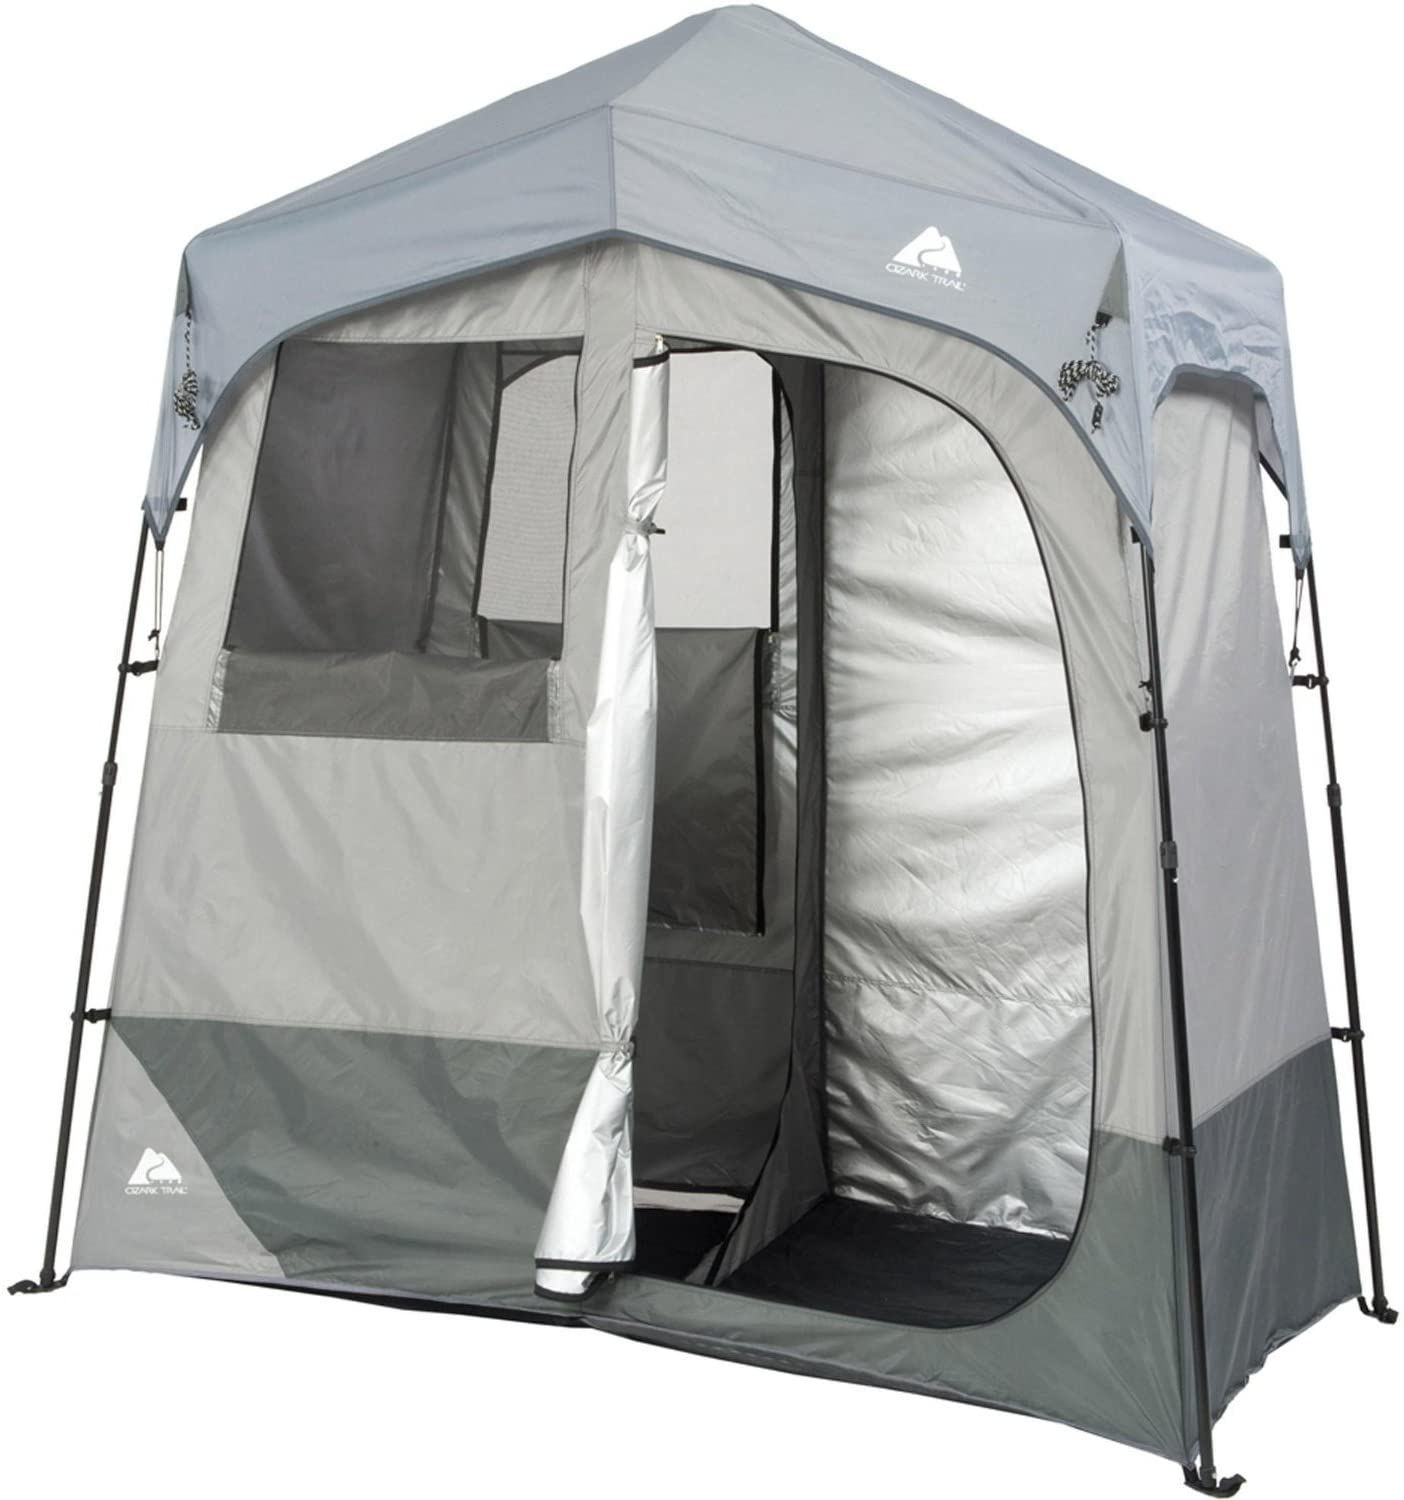 Best Ozark Trail Tents For The Money In 2021 Reviews 40